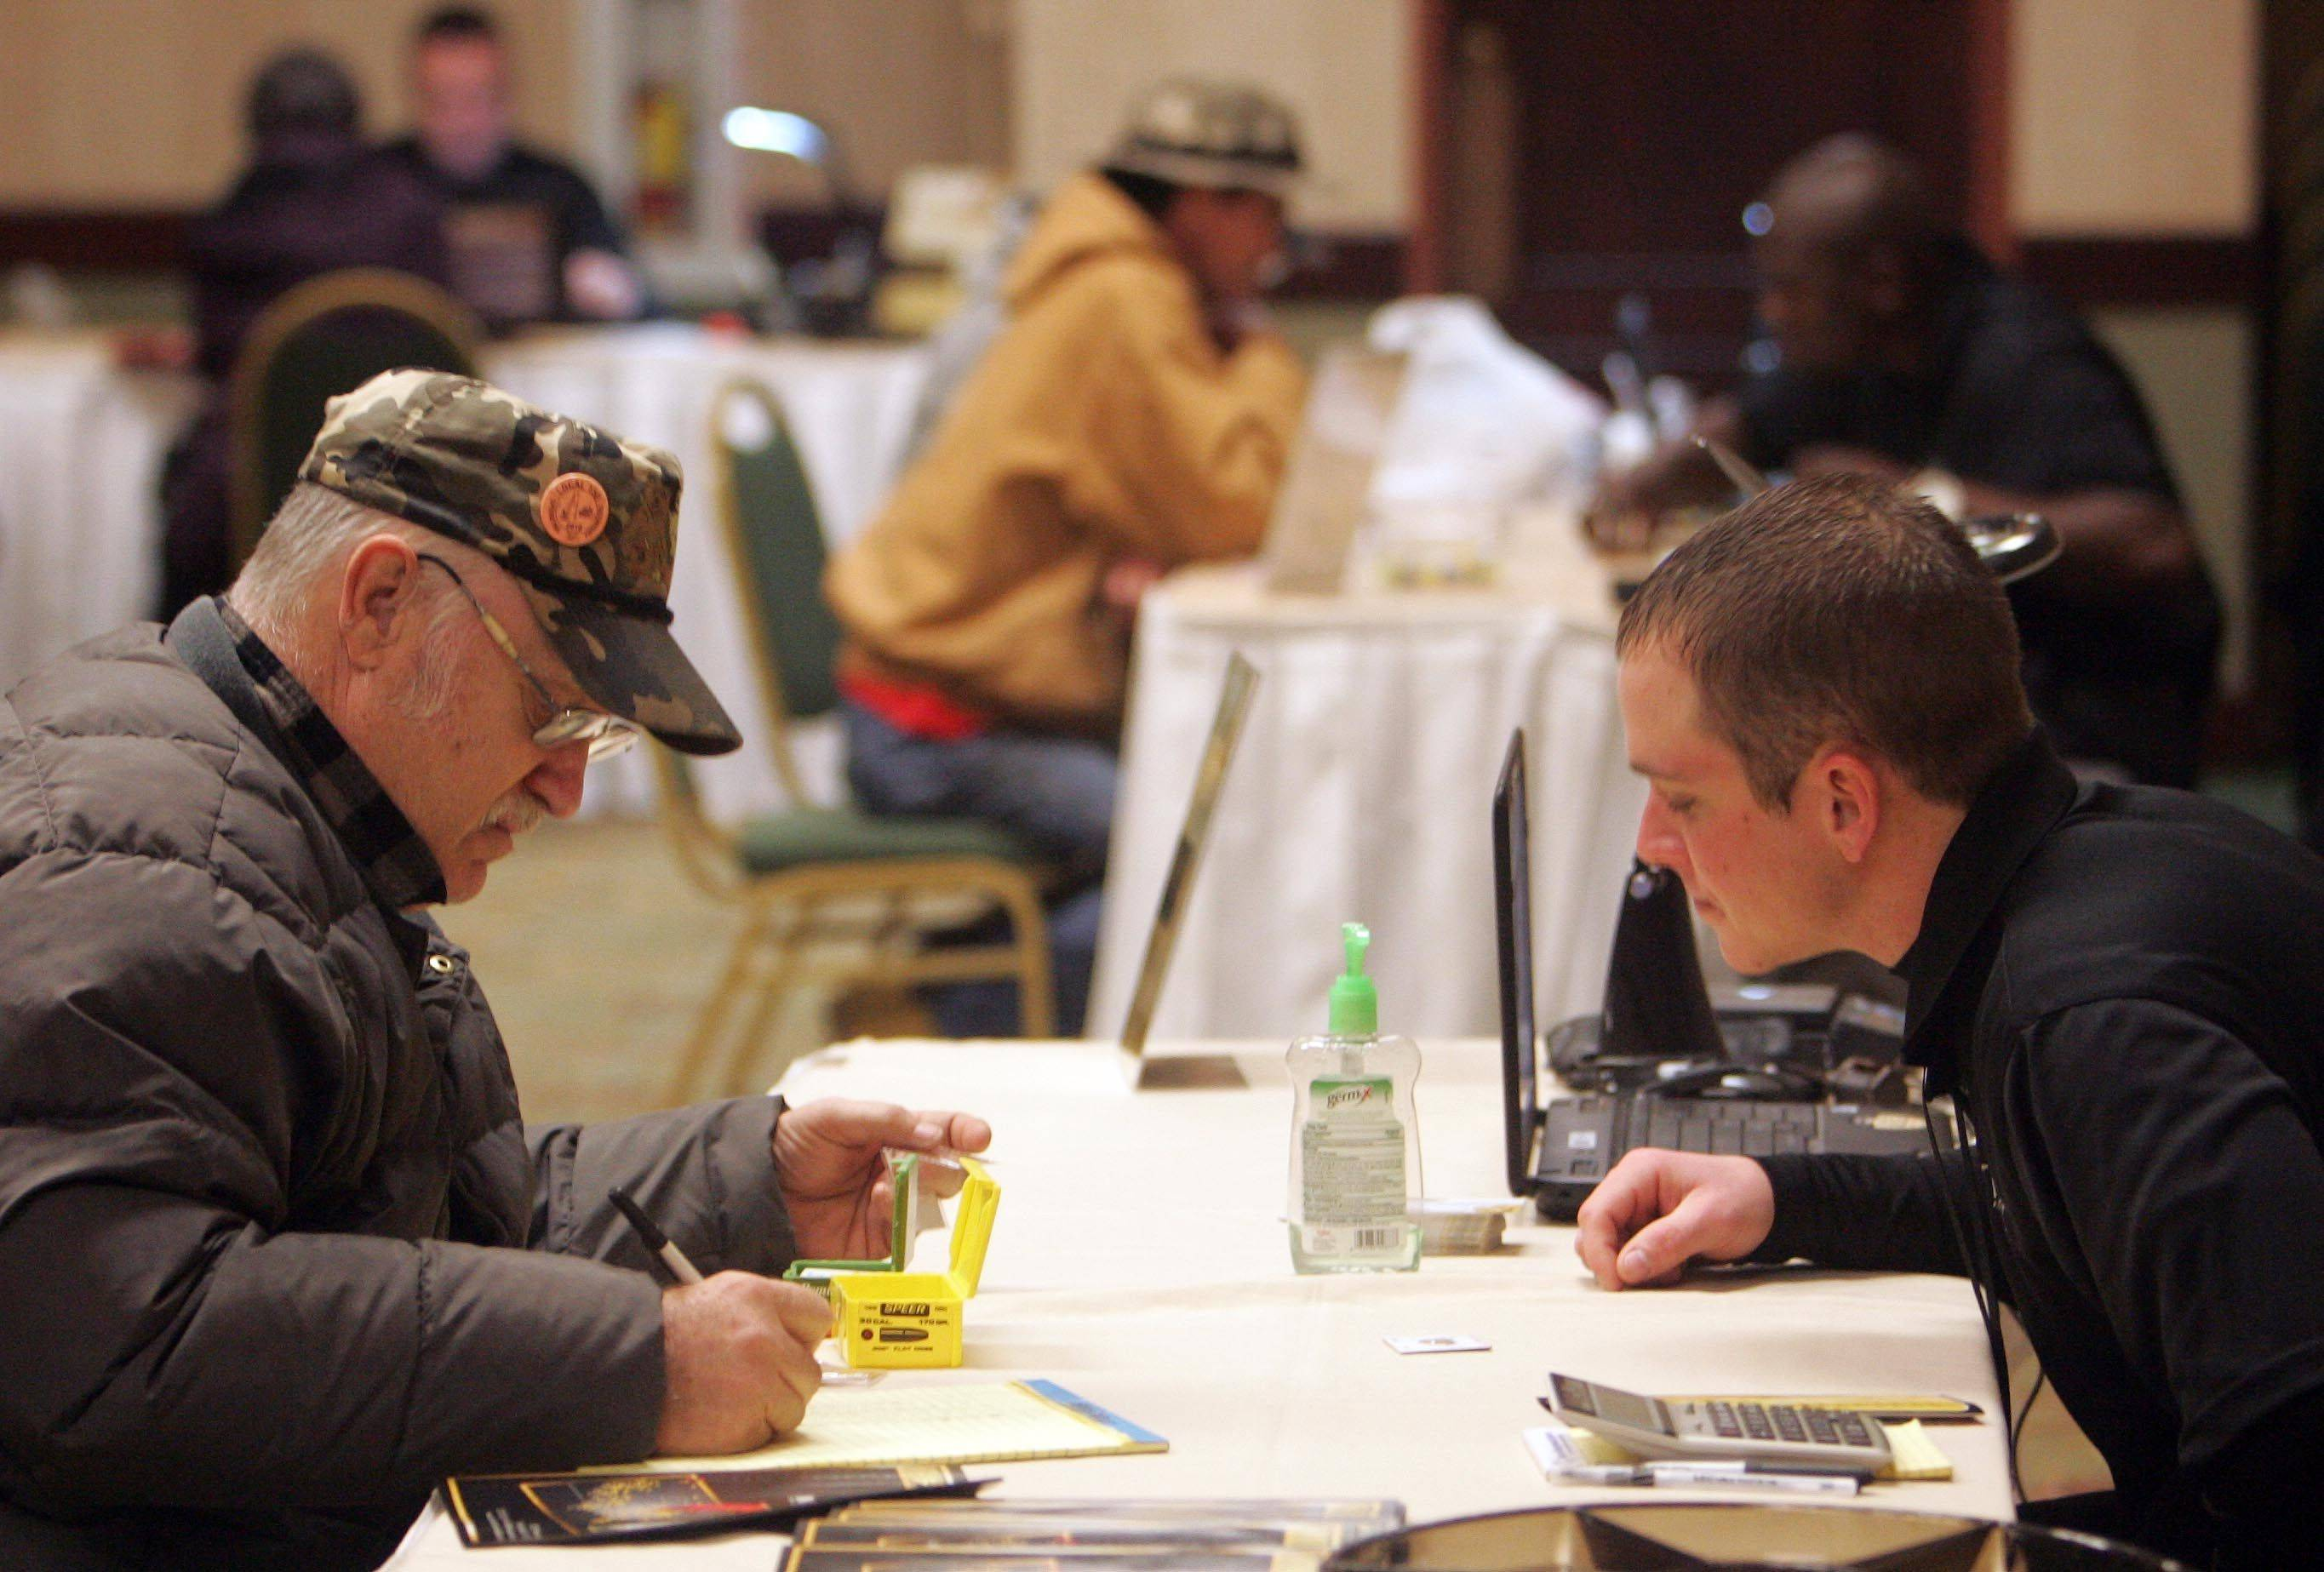 Coin collector Rich Carlsen of Gilberts, left, discusses the value of his coins with buyer Nick Wittman during the International Coin Collectors Association Treasure Hunter show at the Elgin Holiday Inn Wednesday.